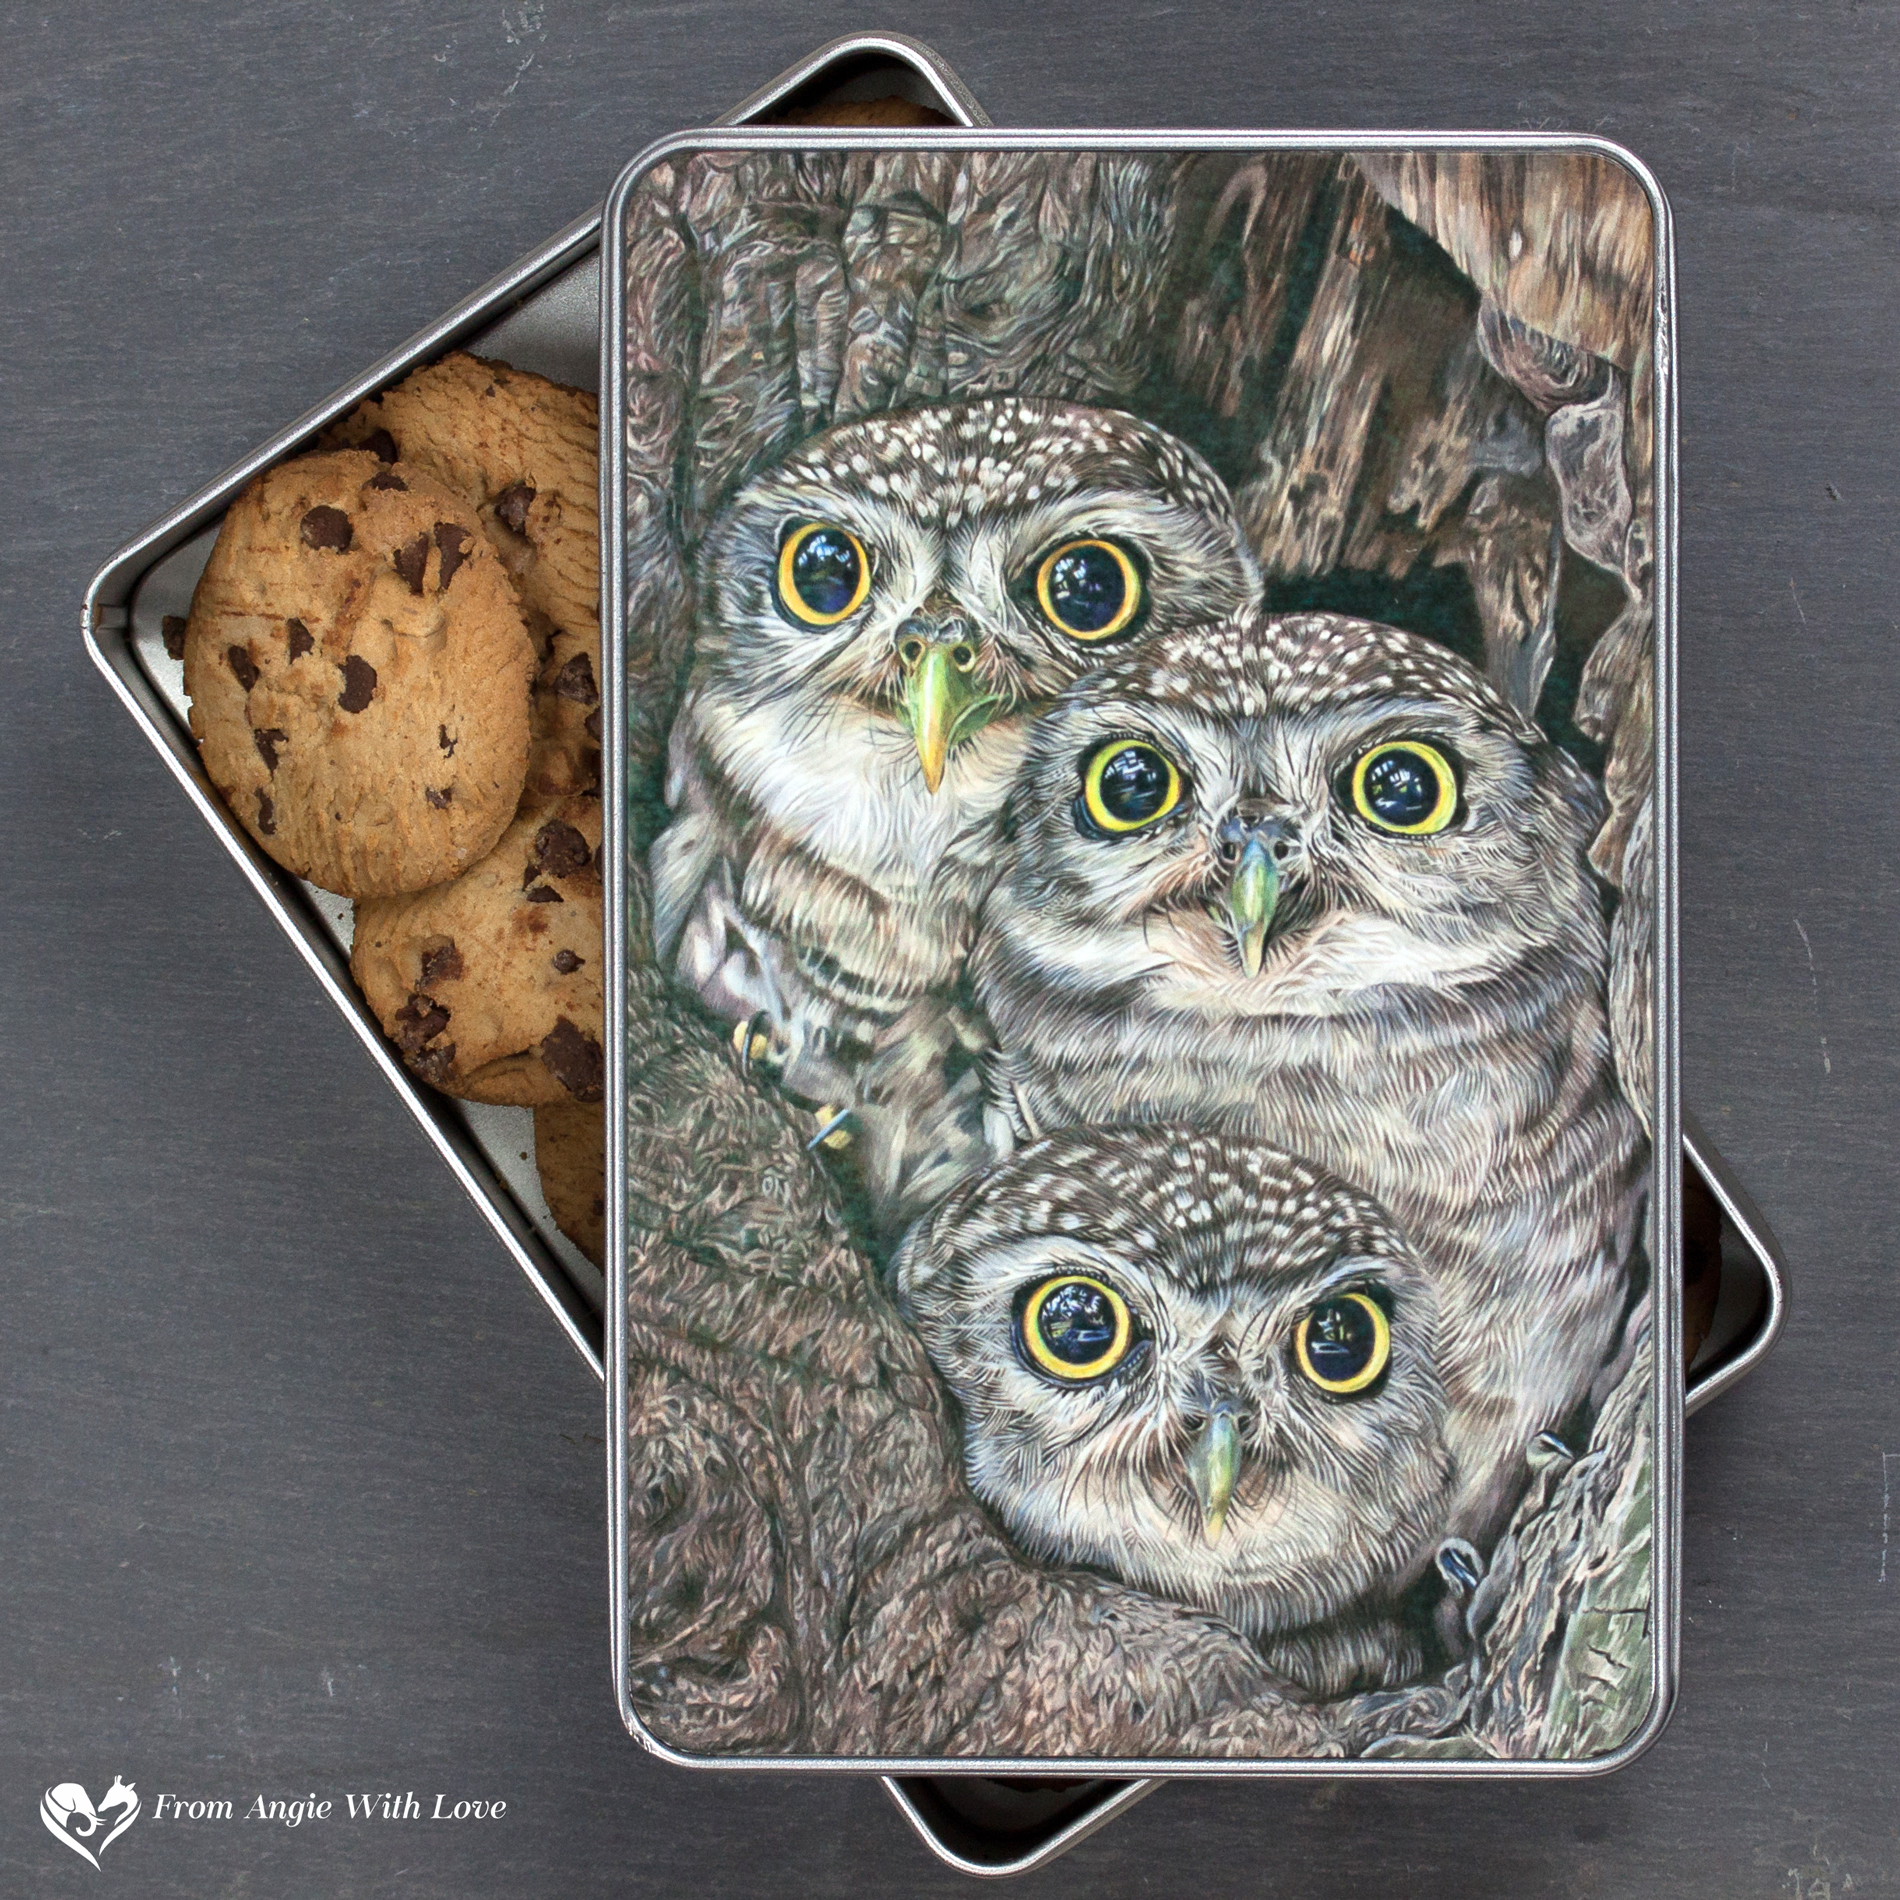 Little Owl Biscuit Tin - Fledging Day